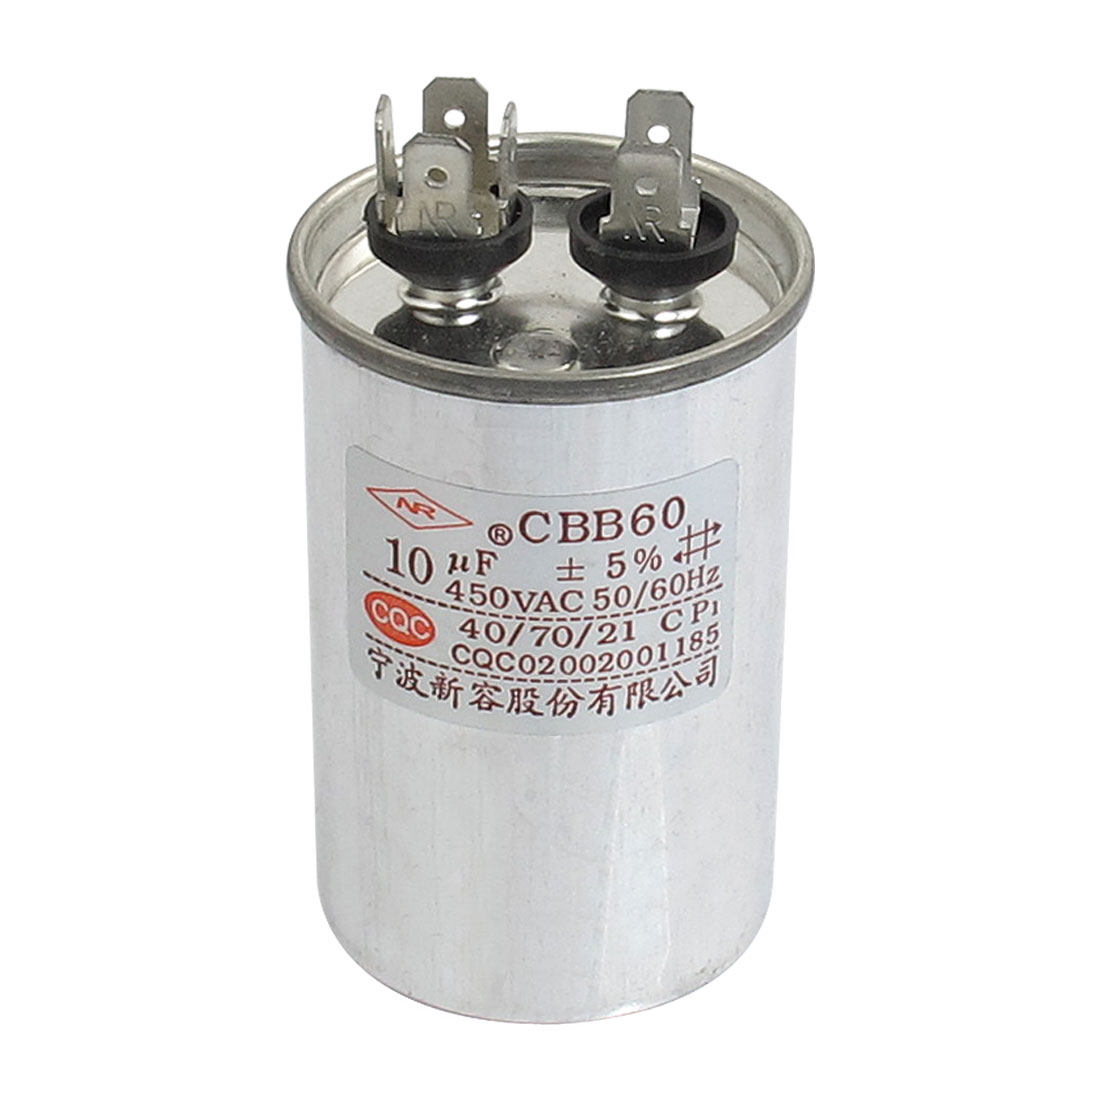 AC 450V 10uF Air Conditioner Motor Run Capacitor CBB60